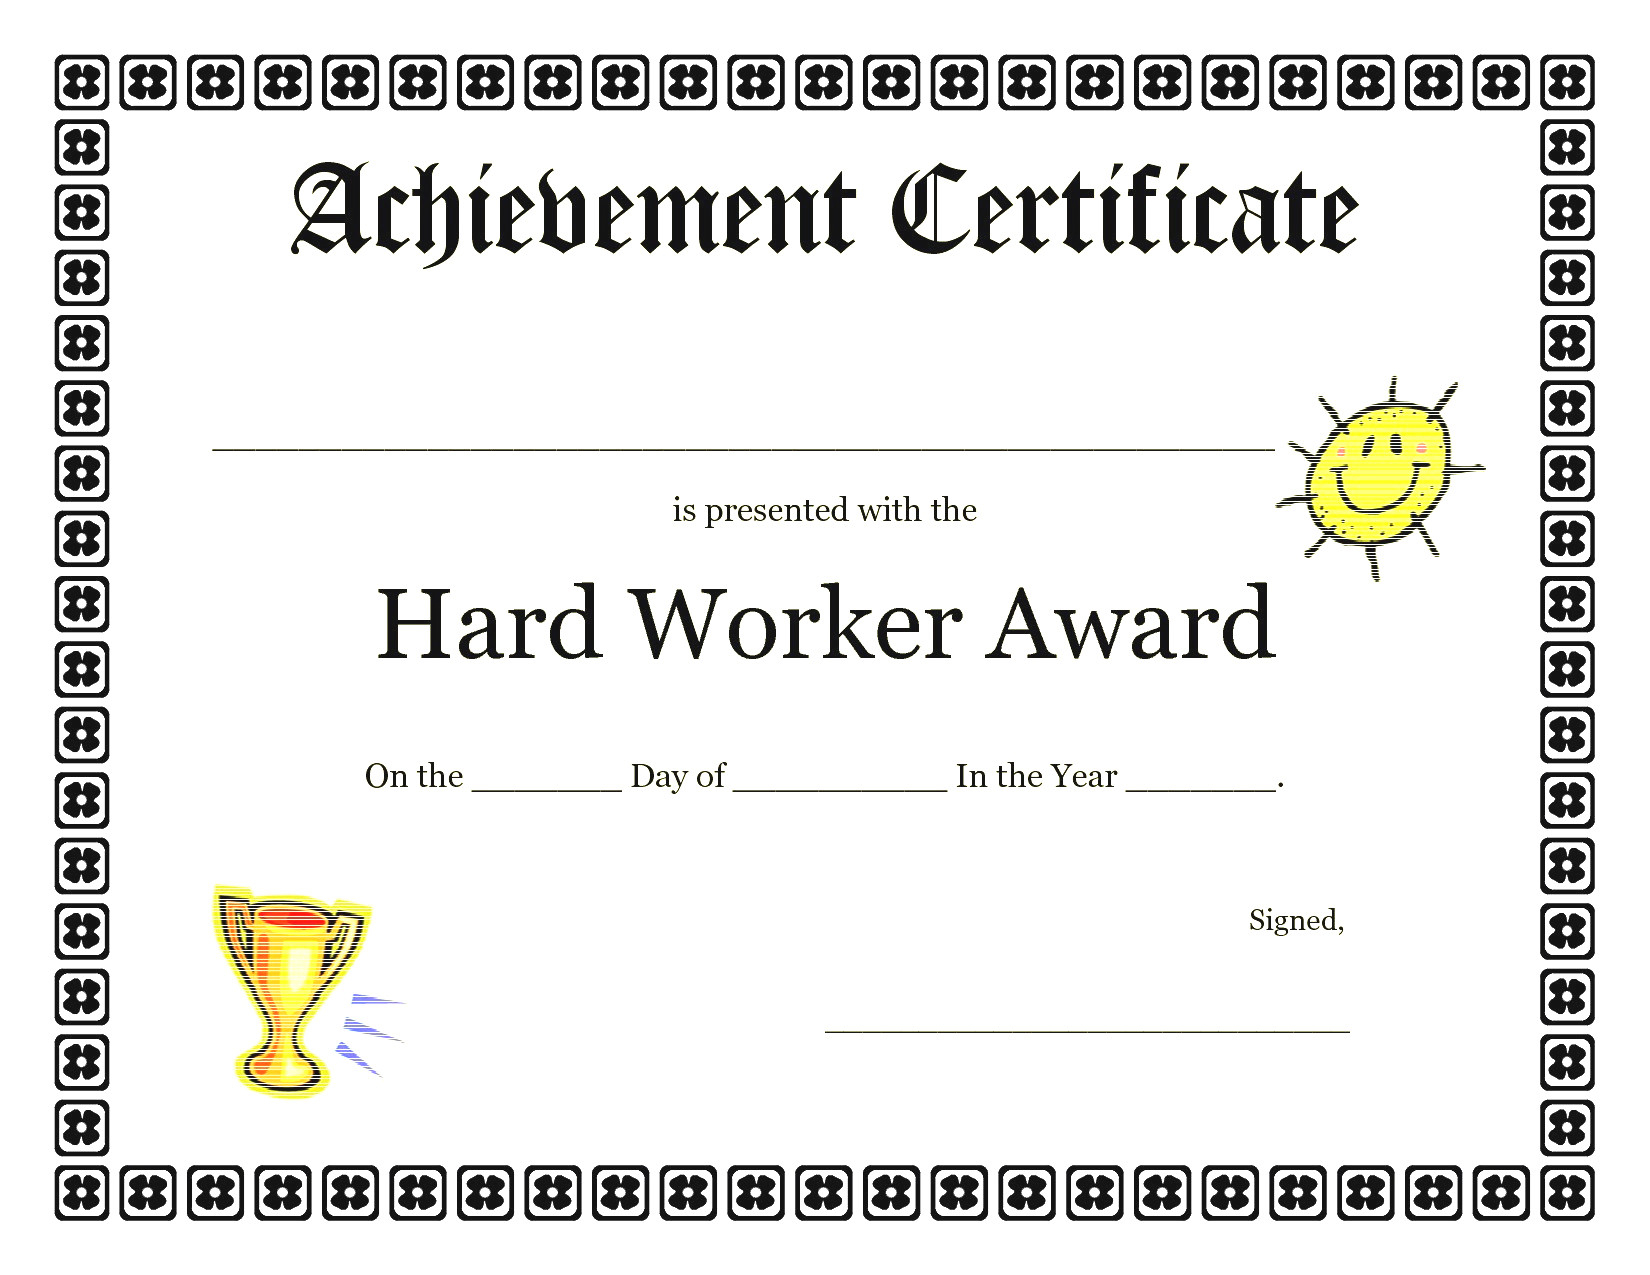 Achievement Certificate Template For Kids   Contesting Wiki Within Certificate Of Achievement Template For Kids